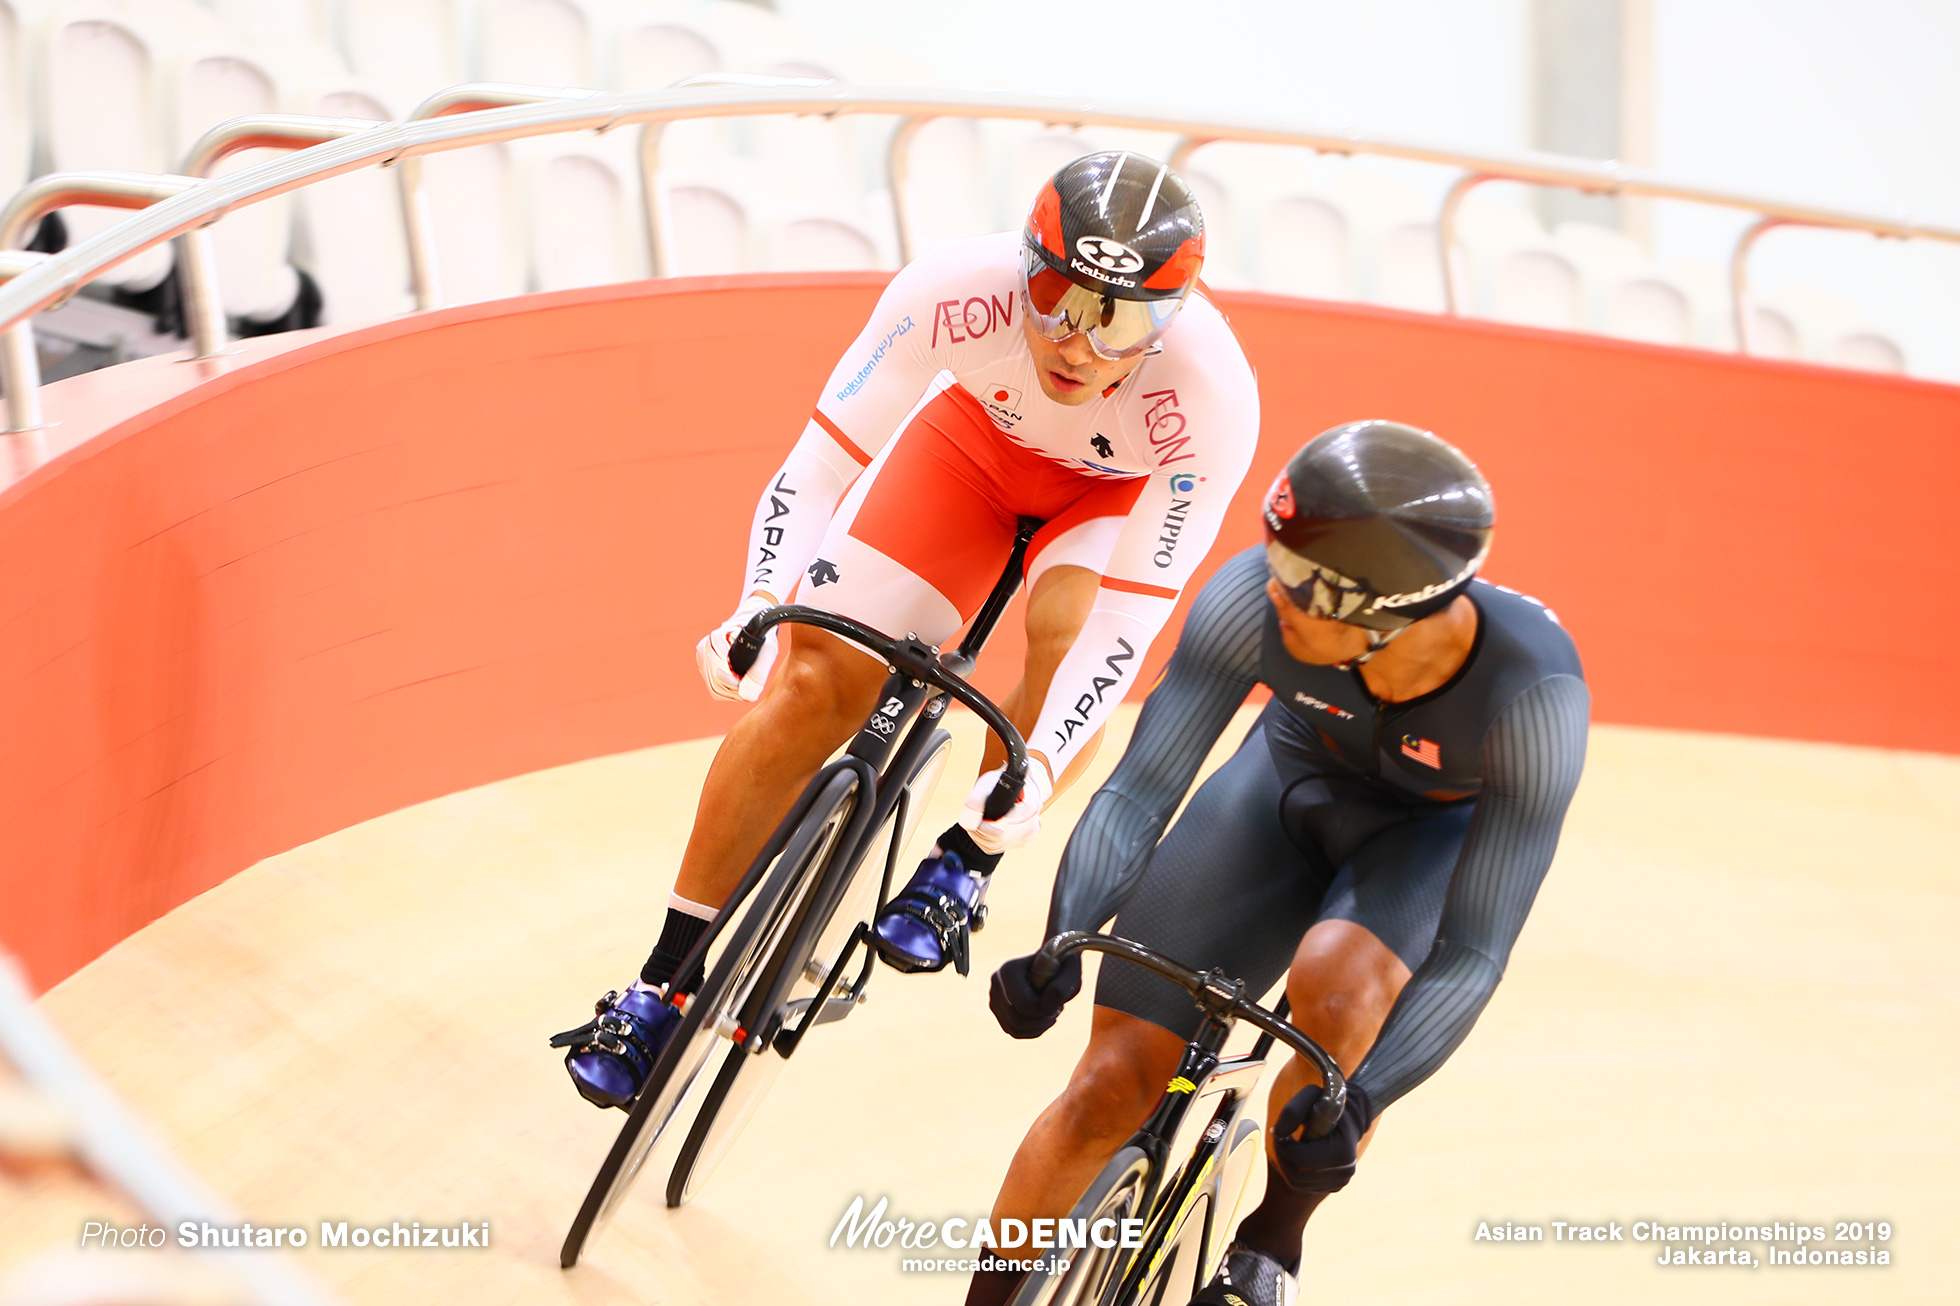 1/8 Final / Men's Elite Sprint / Asian Championships Track 2019 Jakarta